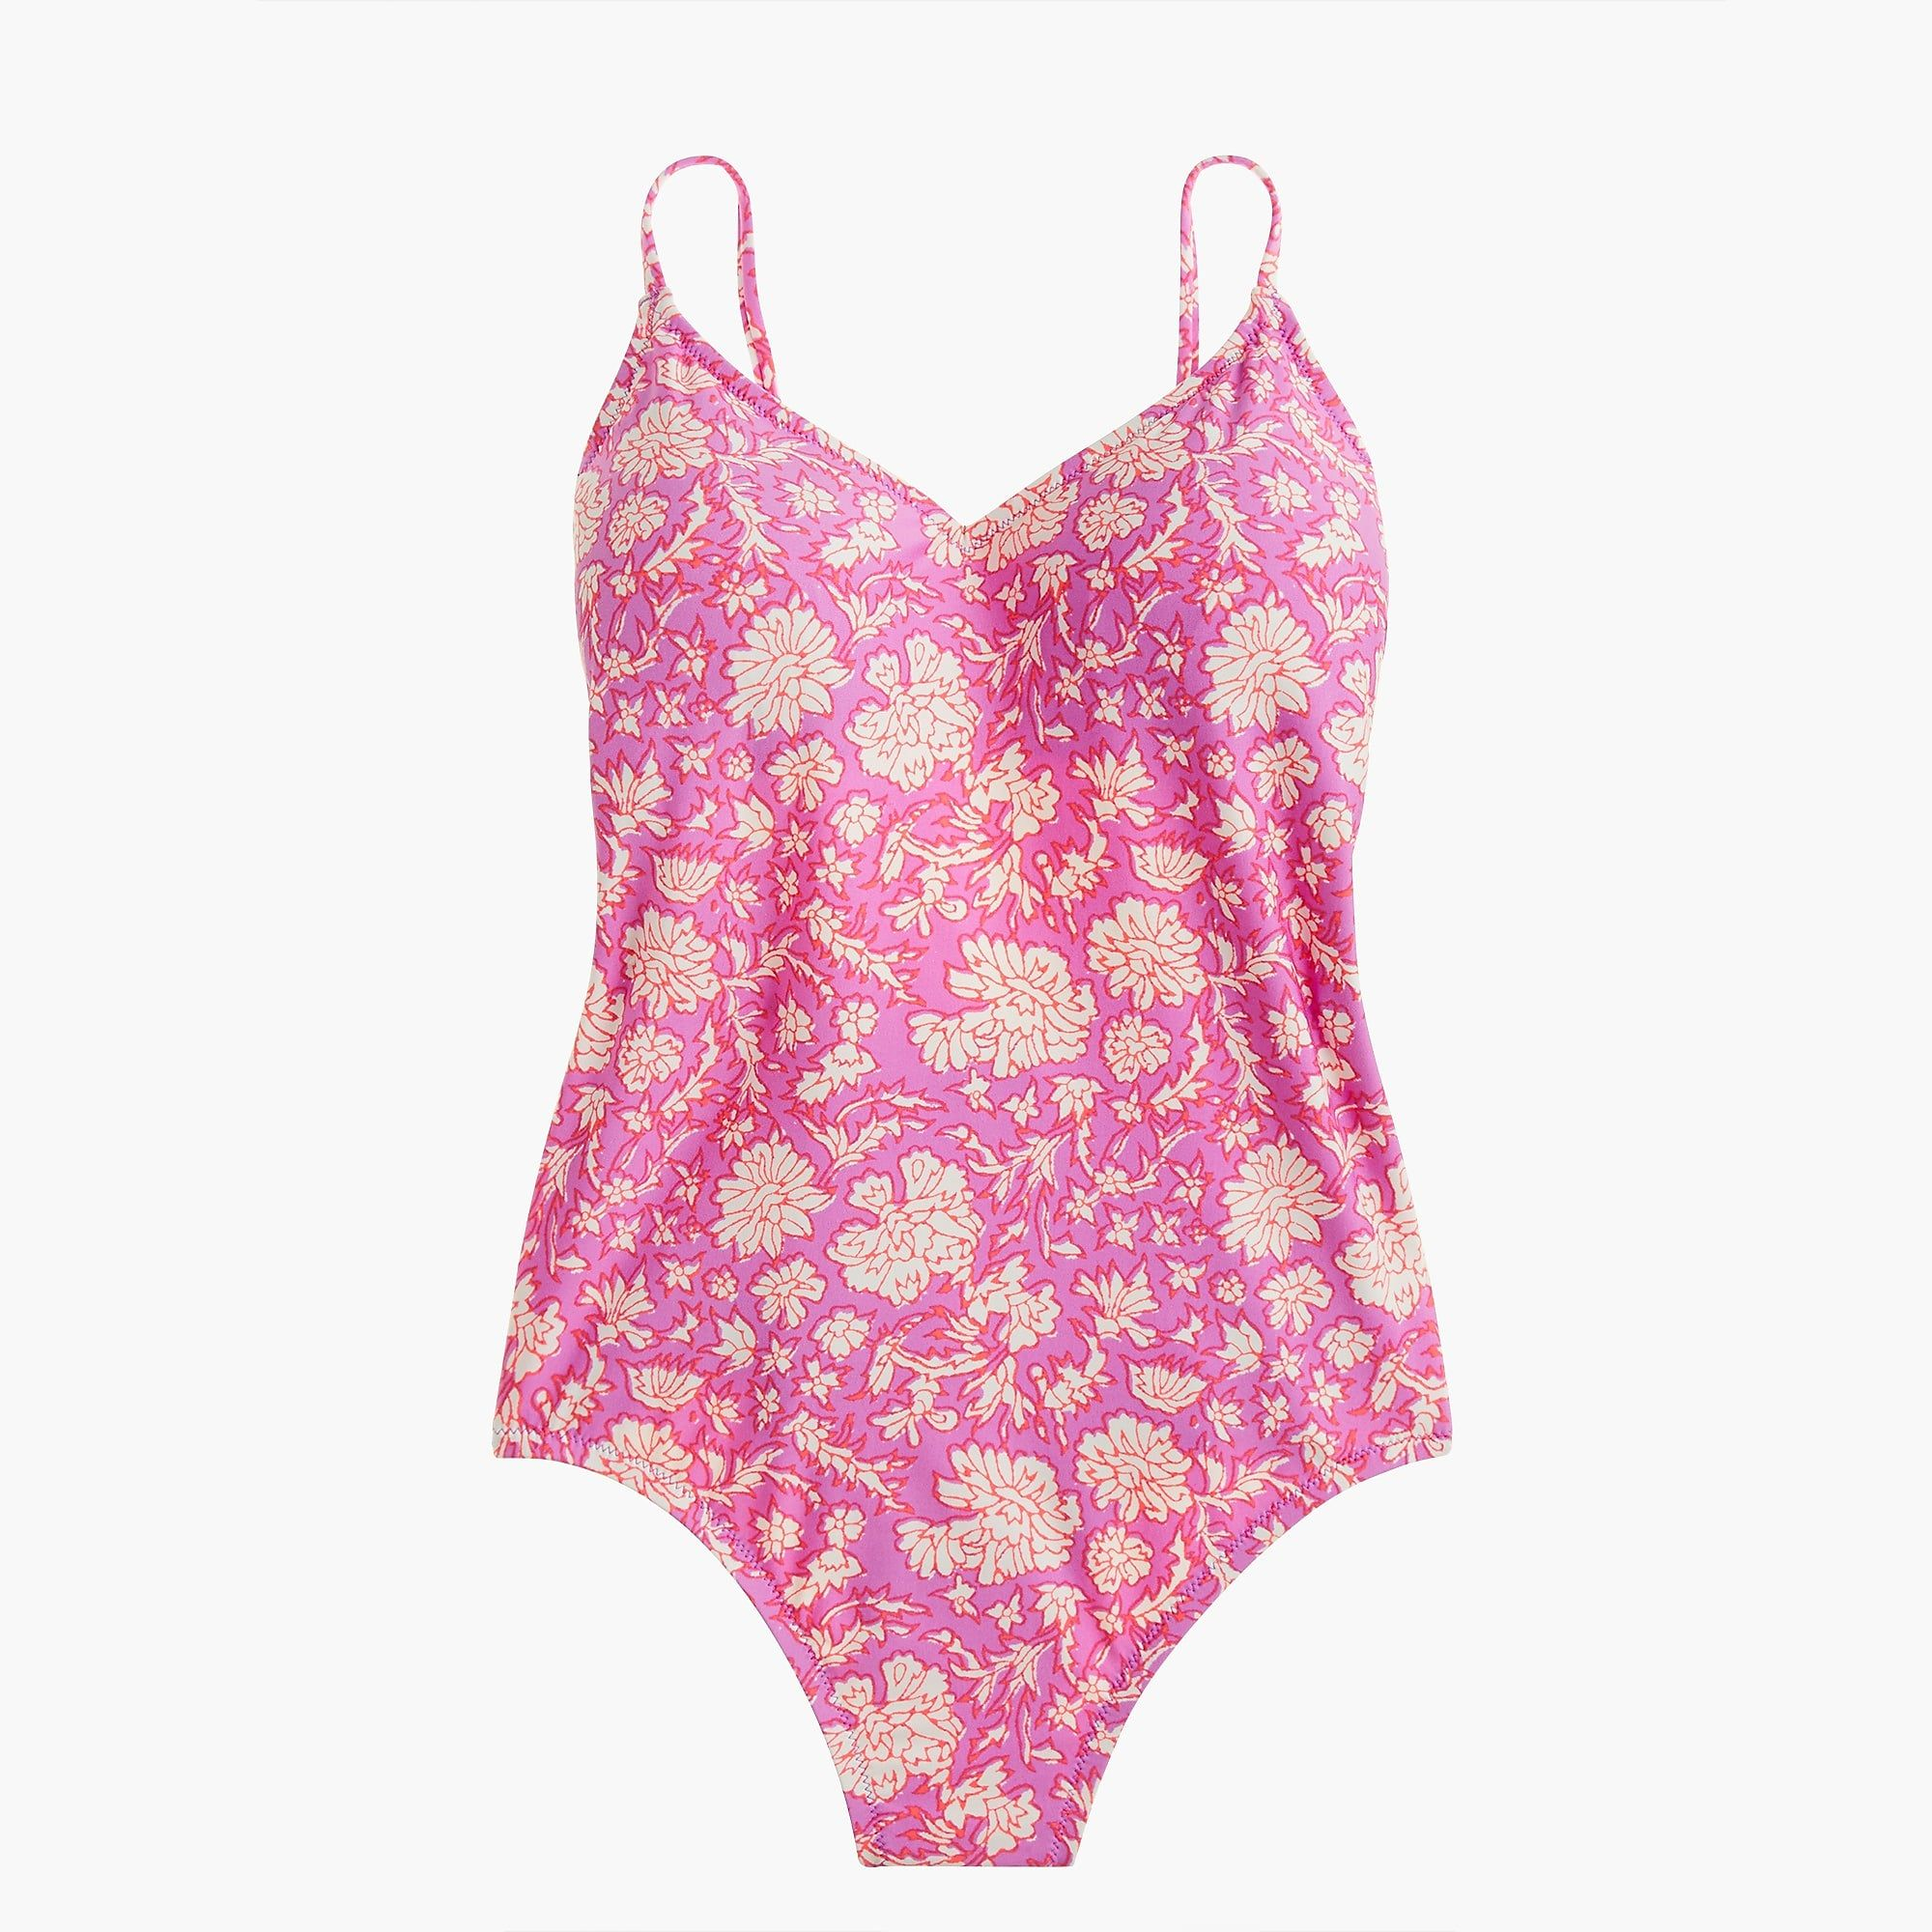 37020dbdb9 Free Shipping Available. J.Crew - Ballet one-piece swimsuit in SZ  Blockprints Modest Swimsuits, Mens